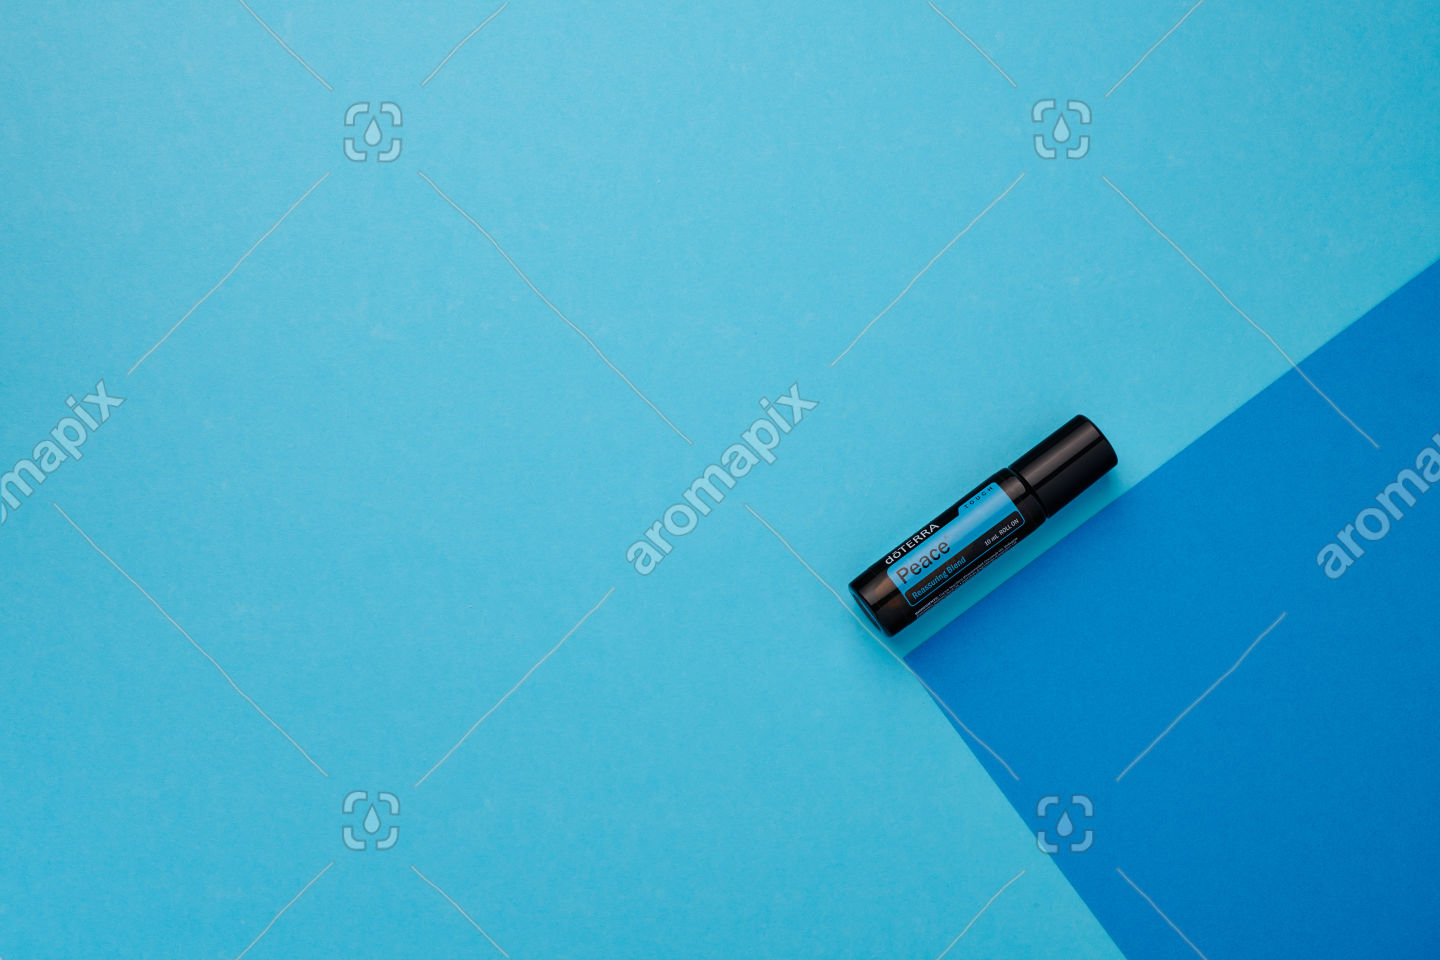 doTERRA Peace Touch on a dark blue and light blue background